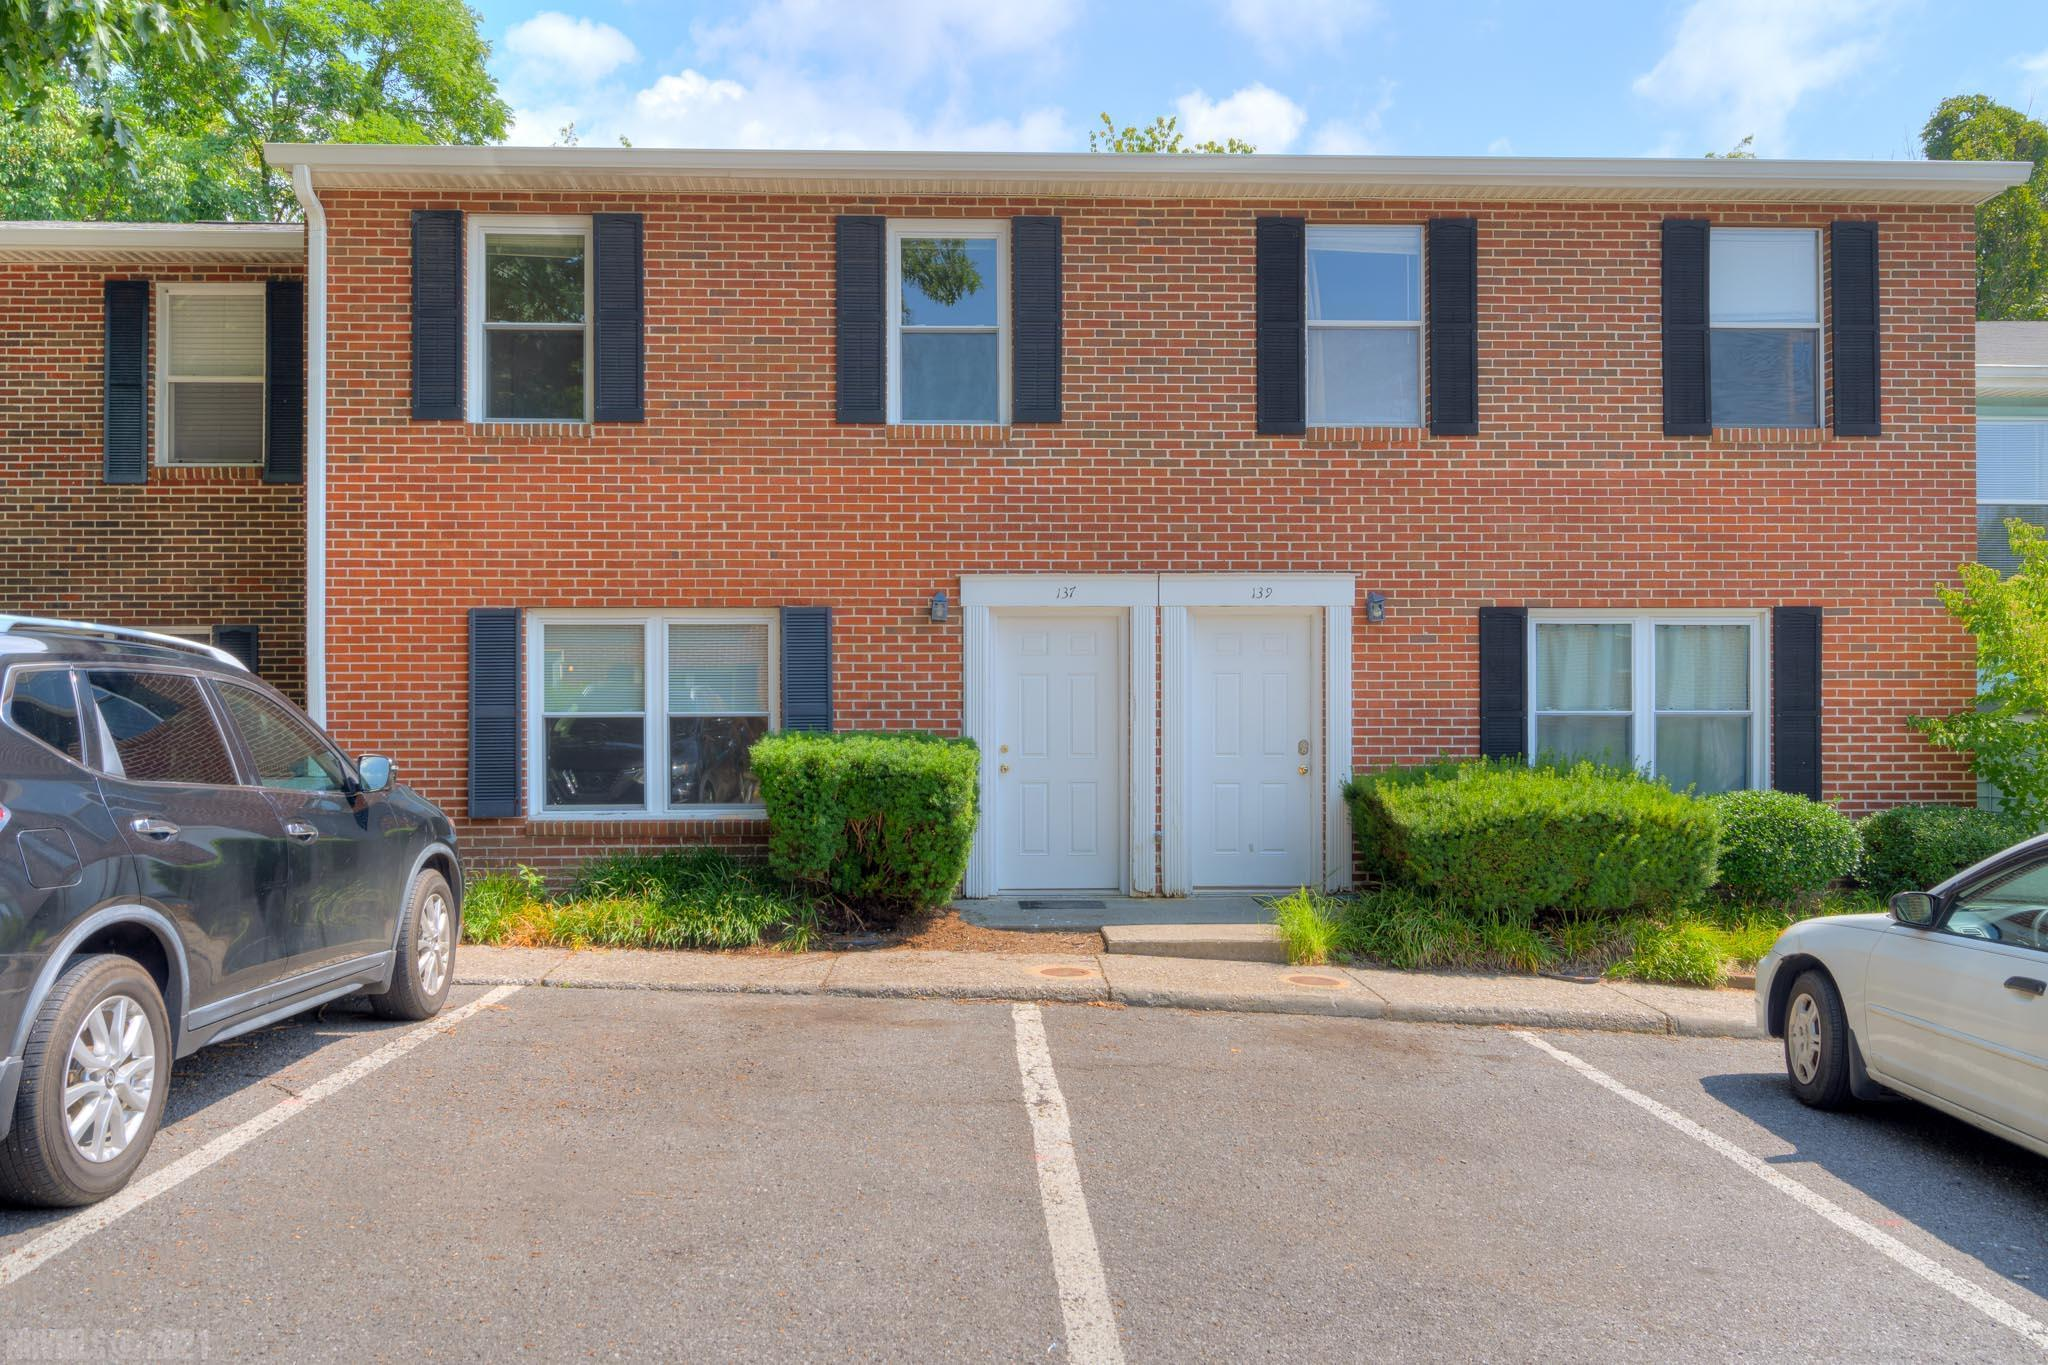 Nicely updated 4BR/2.5BA townhouse in Blacksburg's Clover Valley Estates.  Main level offers spacious living room and family room with laminate floors, laundry closet, updated 1/2 bath, and completely remodeled kitchen with contemporary design including offset vinyl tile floor, brushed nickel hardware and nice bright countertops.  Upper level includes 4 bedrooms, 2 full baths and a large hall closet with great storage potential.  Entire unit has been freshly painted and carpets professionally cleaned.  Great rental history and fabulous Blacksburg location near public transportation, shopping, aquatic and rec center and short distance to Virginia Tech campus!